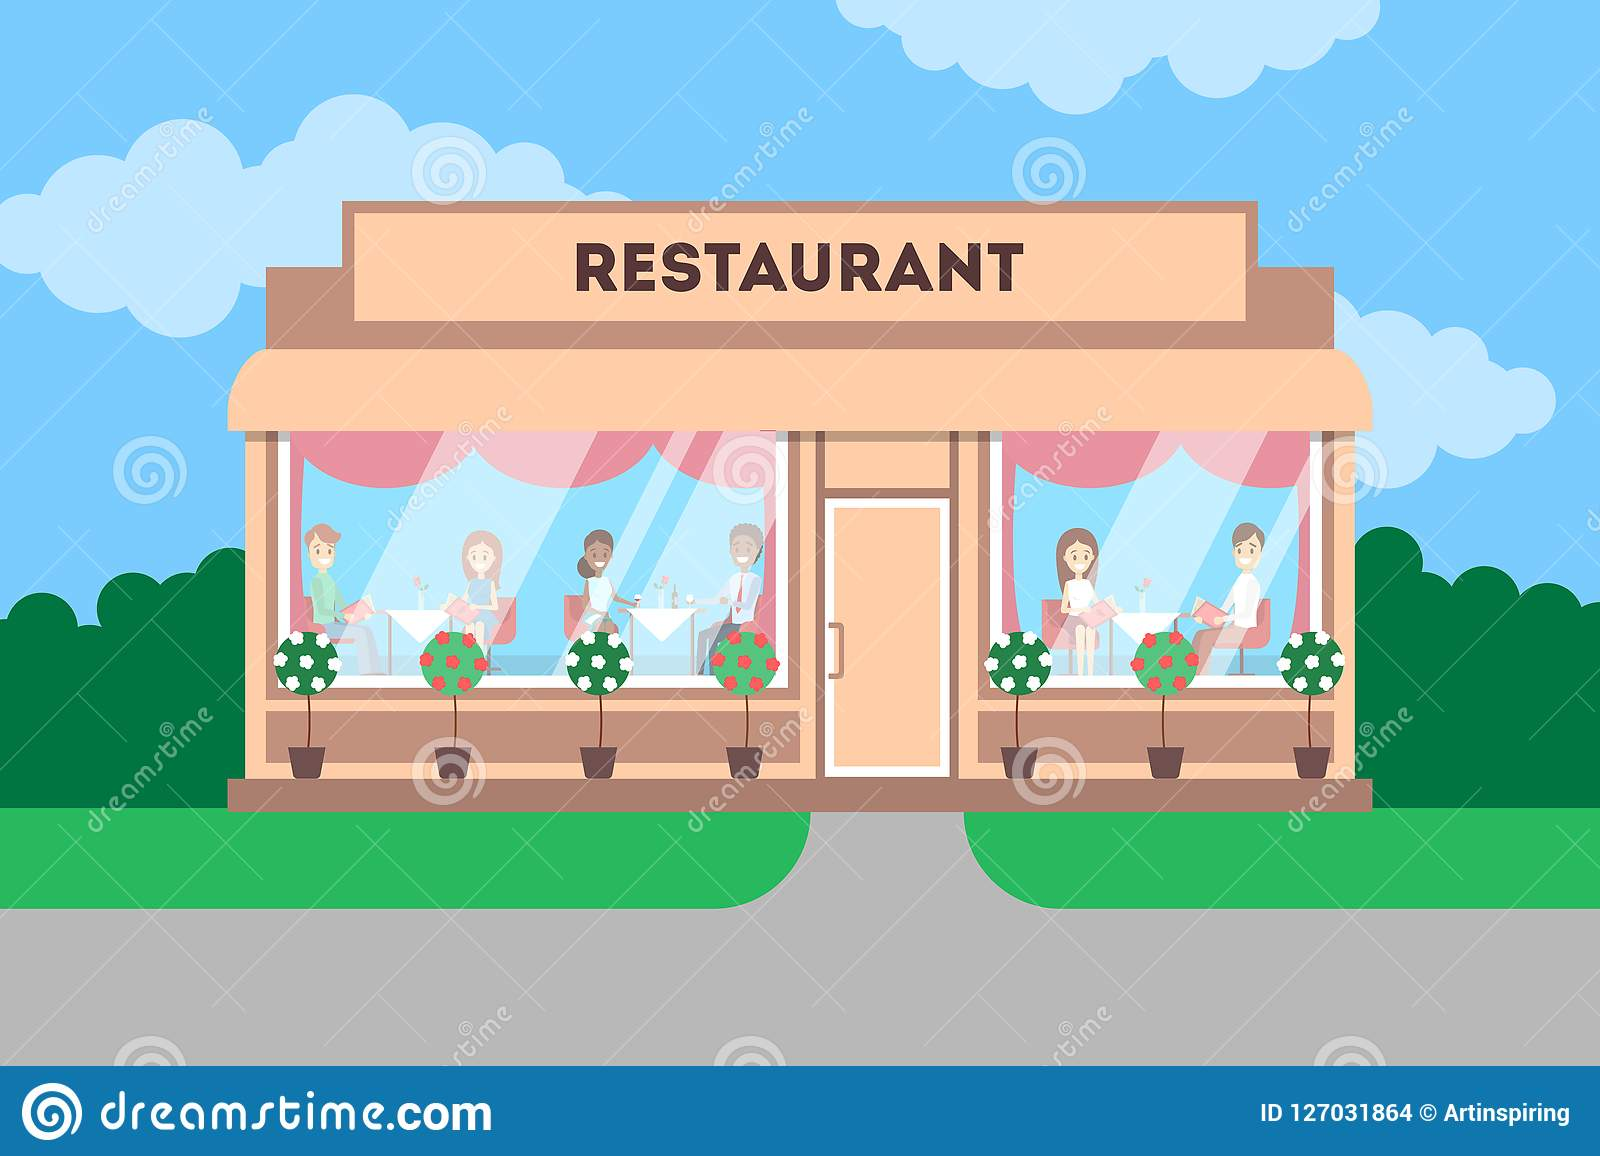 Restaurant Building In The City Cafe Exterior Stock Vector Illustration Of Diner Design 127031864